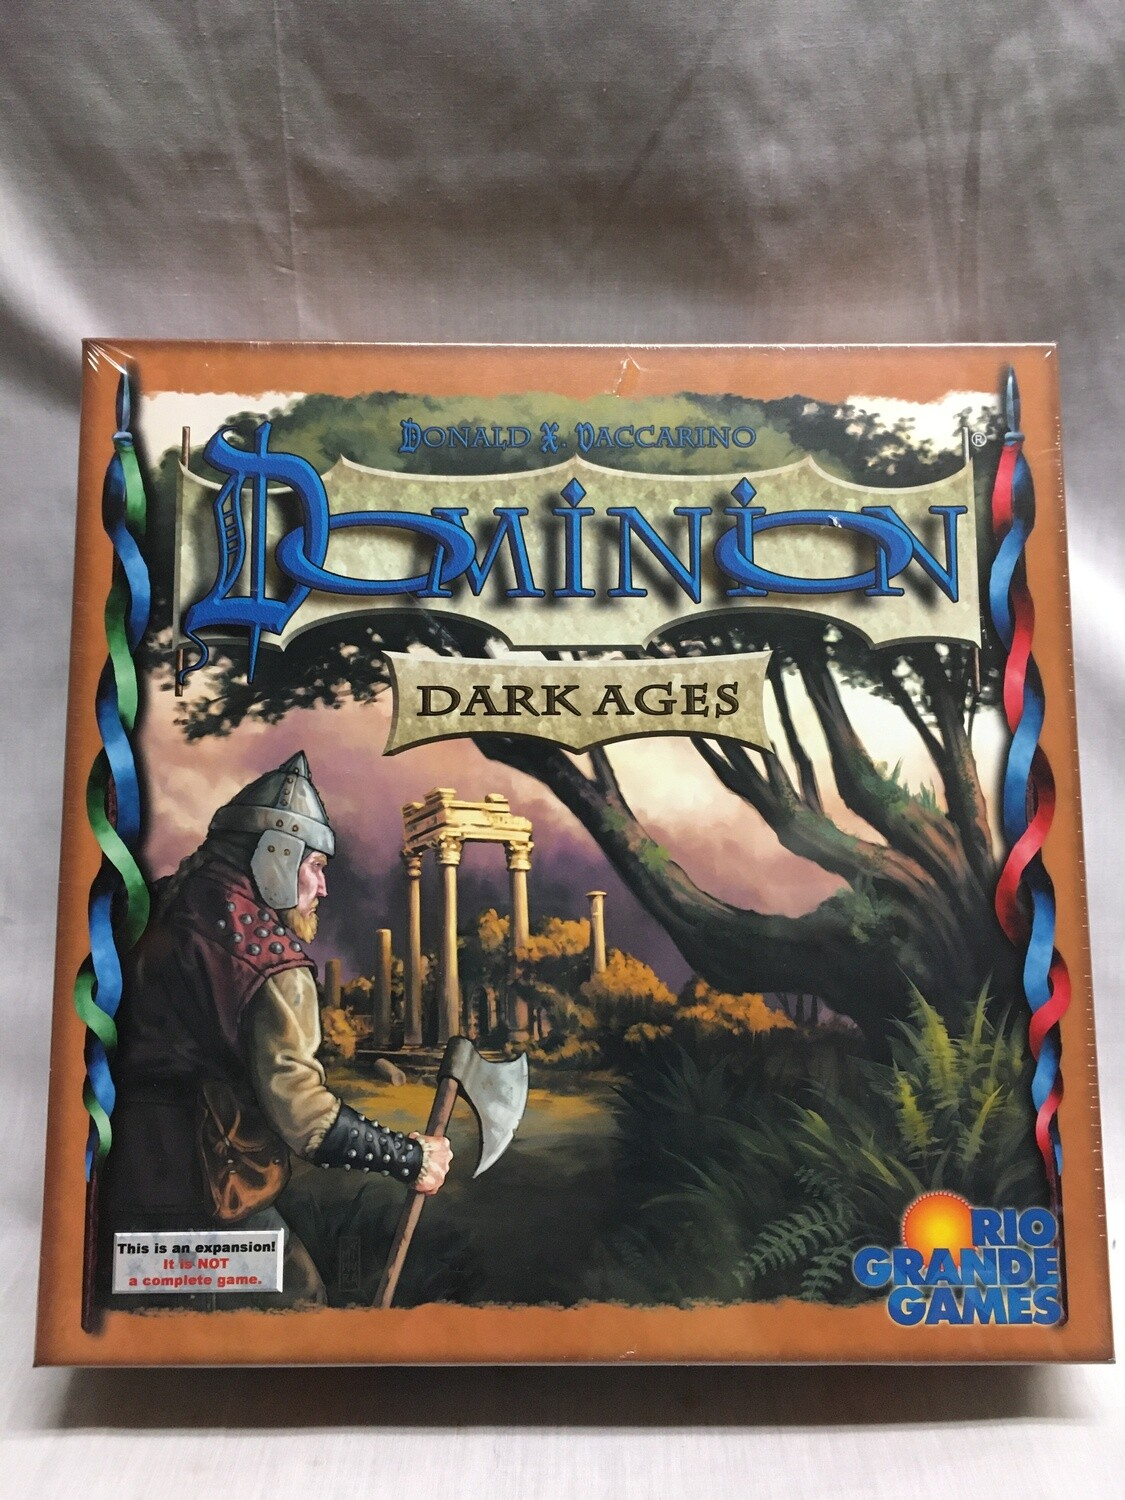 Dominion - Dark Ages Expansion (This is not a stand alone game - MUST be played with base game or base cards sold separately)